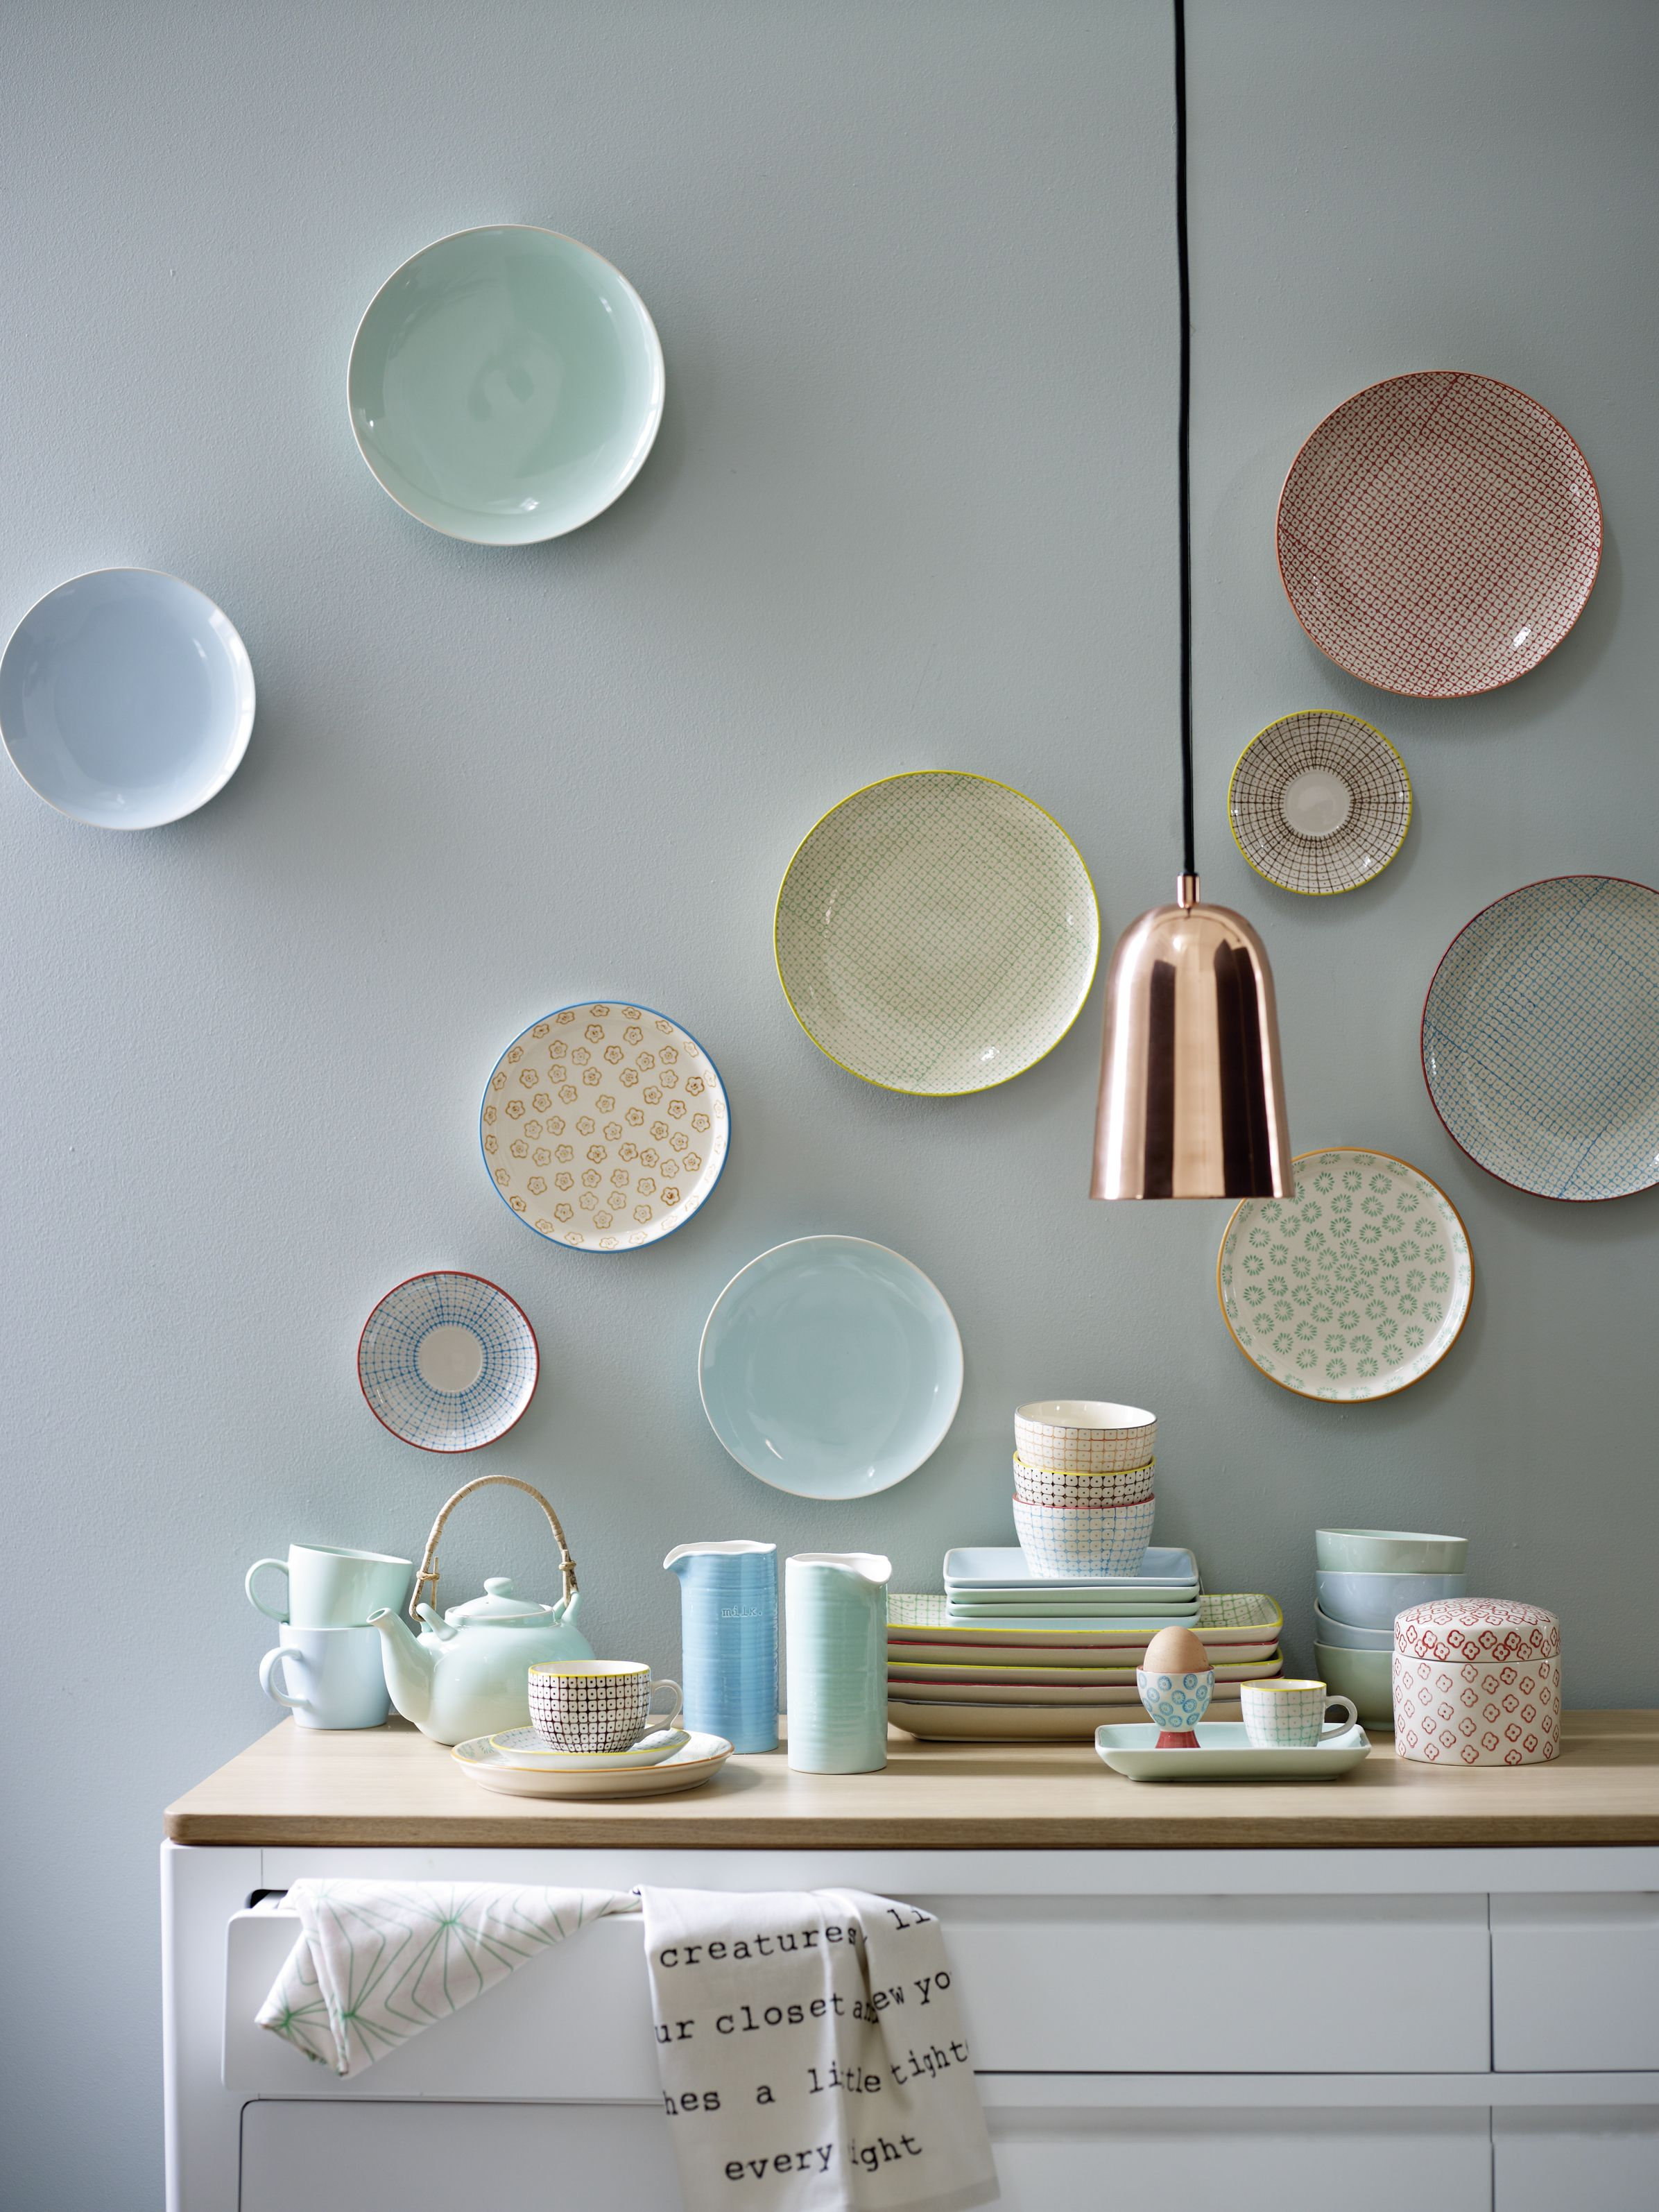 The ceramic Scandinavian collection from Bloomingville creates